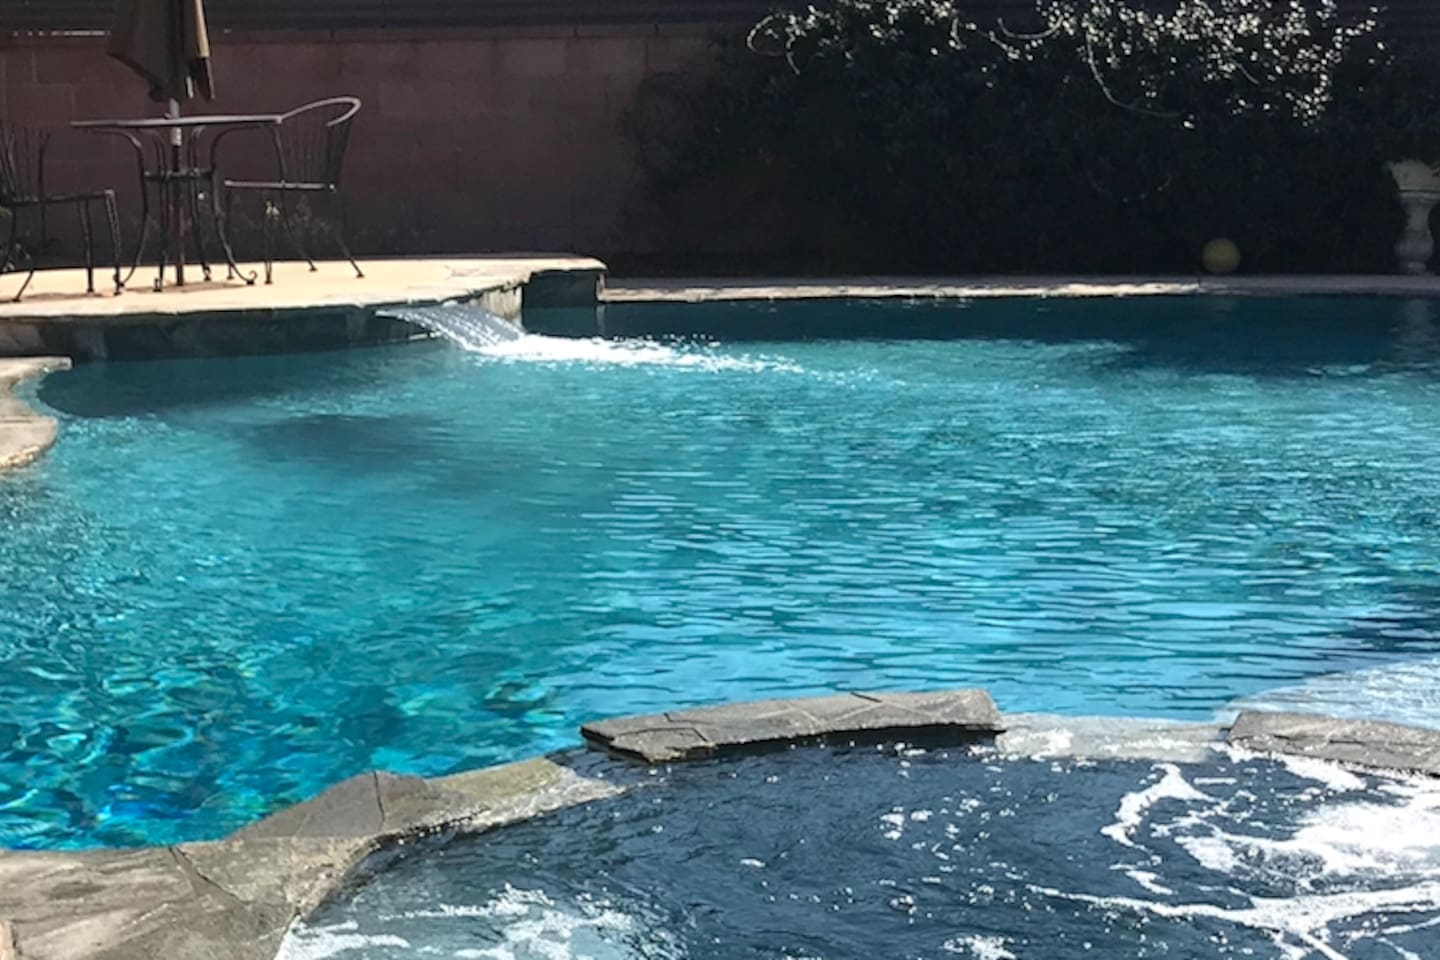 Take a dip in the sparkly pool to relax after tiring days!